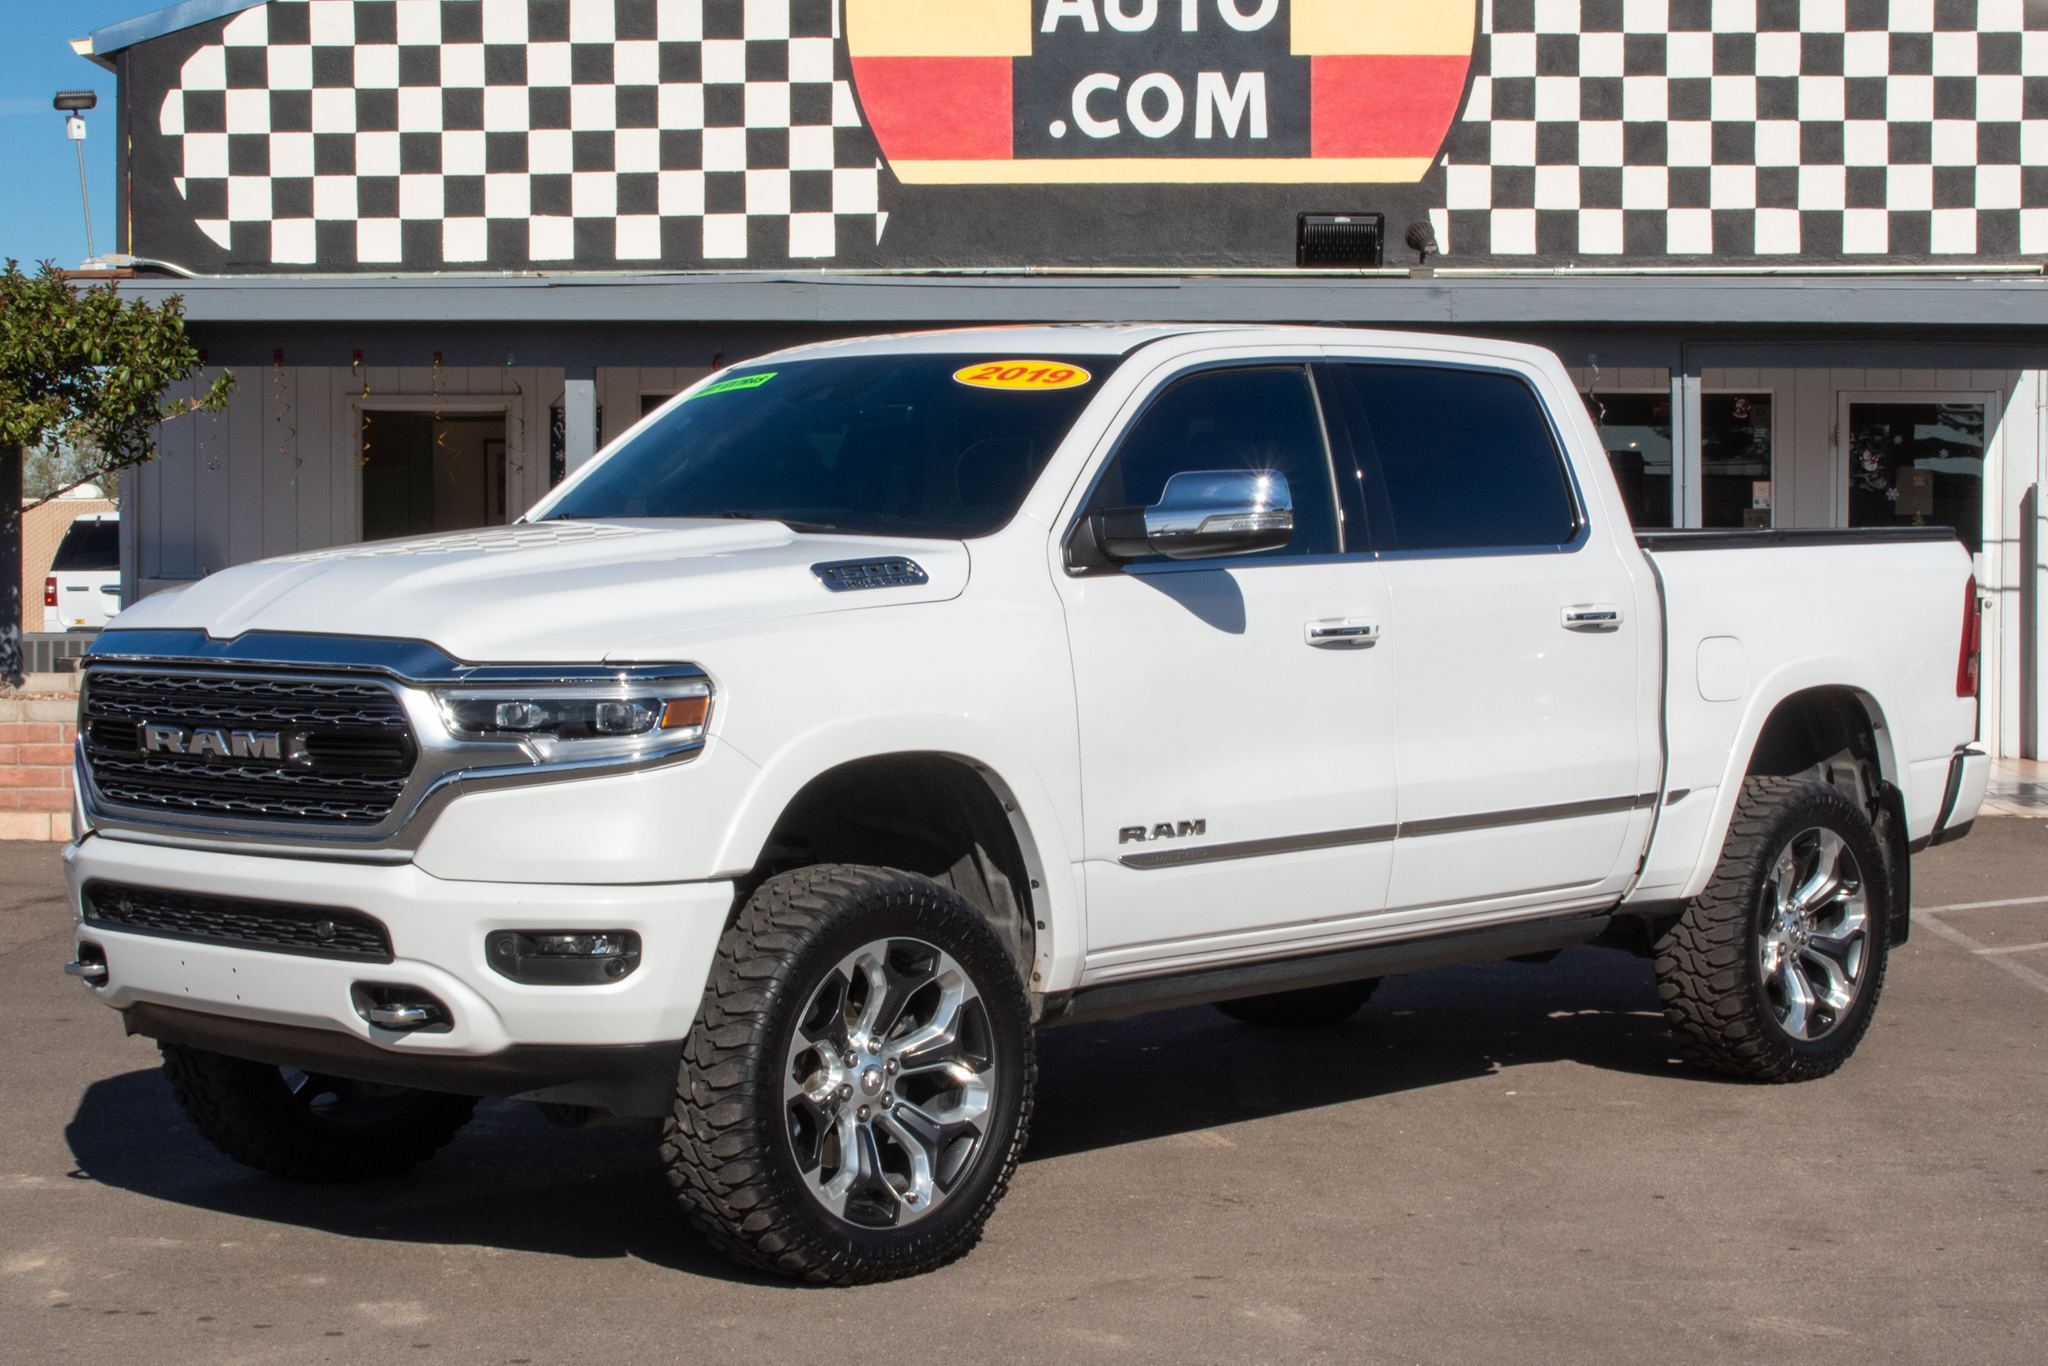 Photo of 2019 Ram 1500 4WD Crew Cab Limited